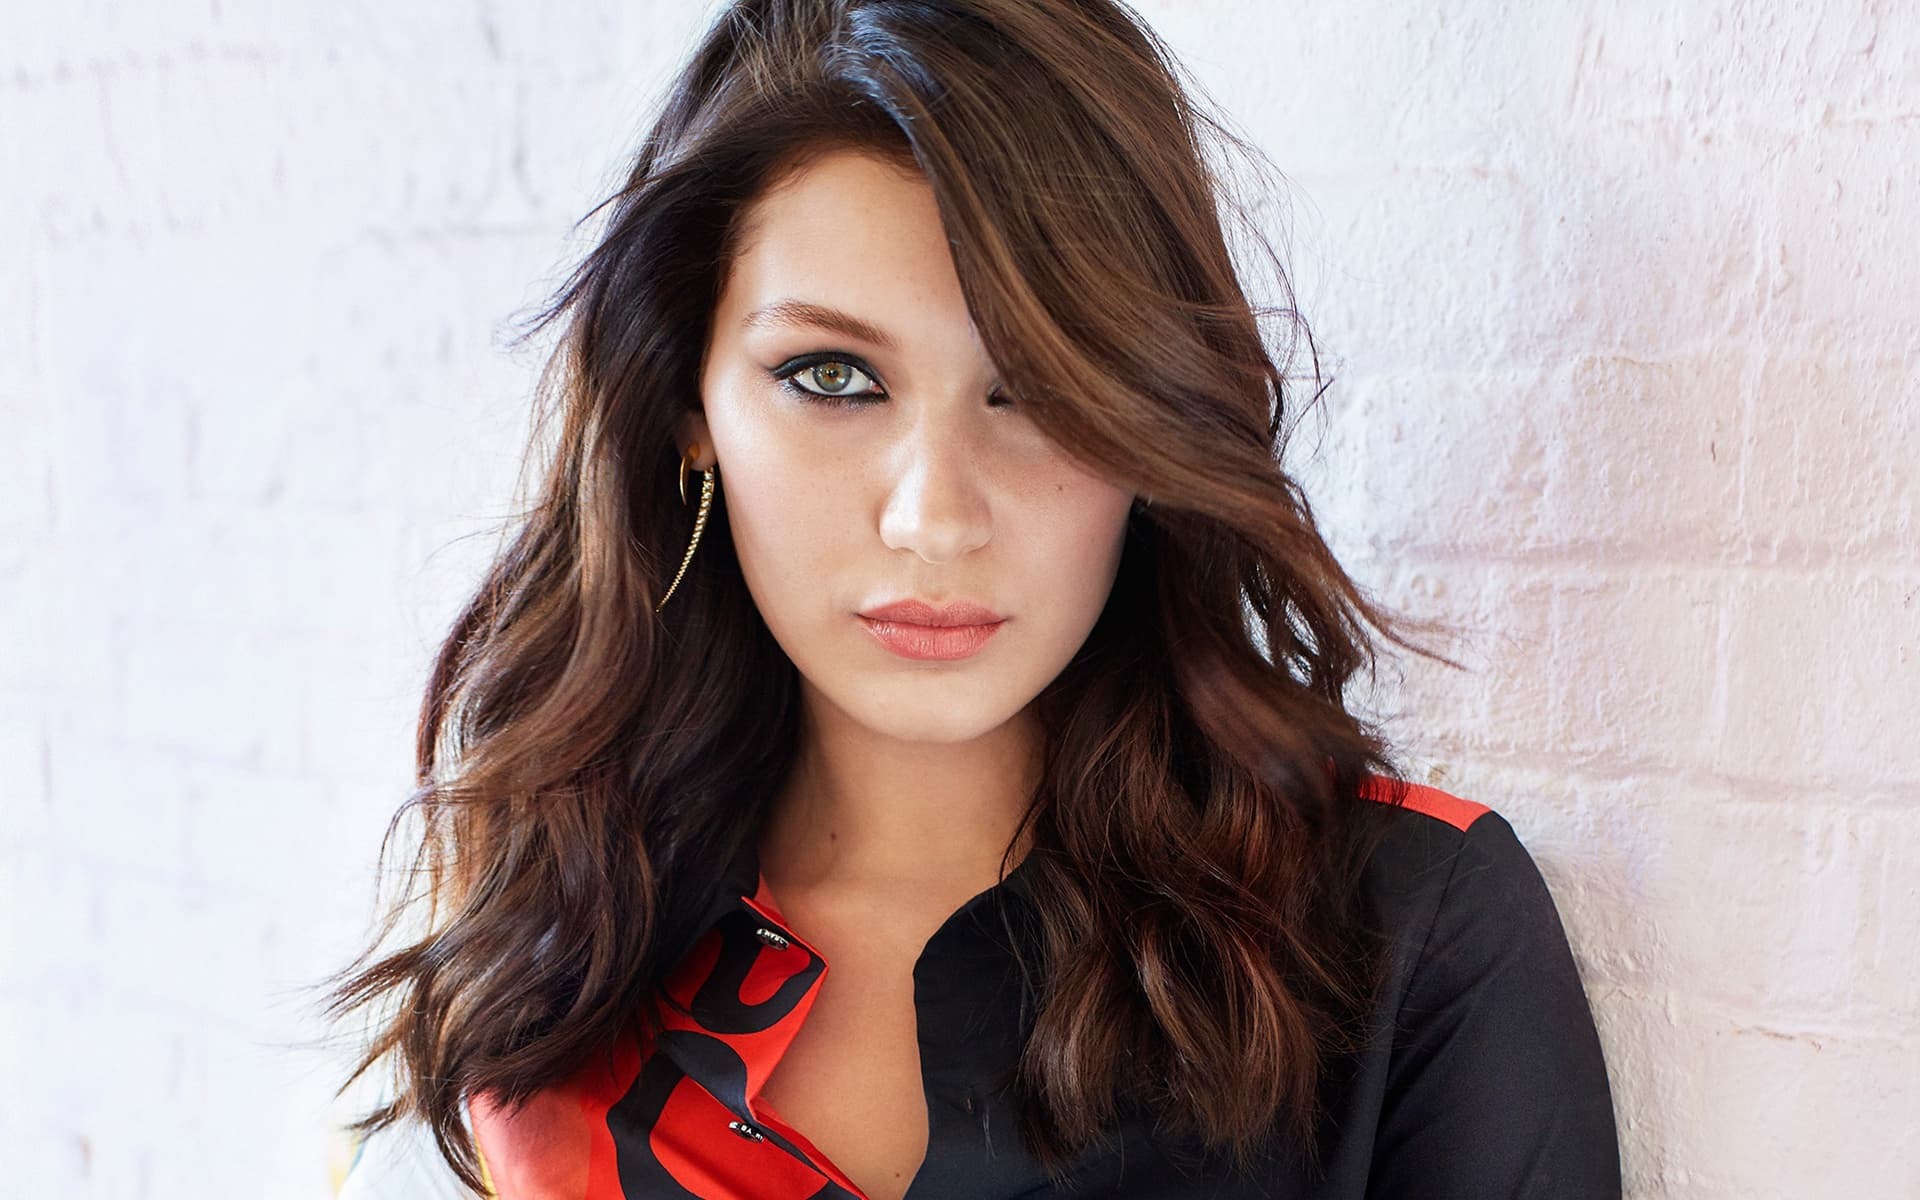 bella hadid wallpapers images photos pictures backgrounds